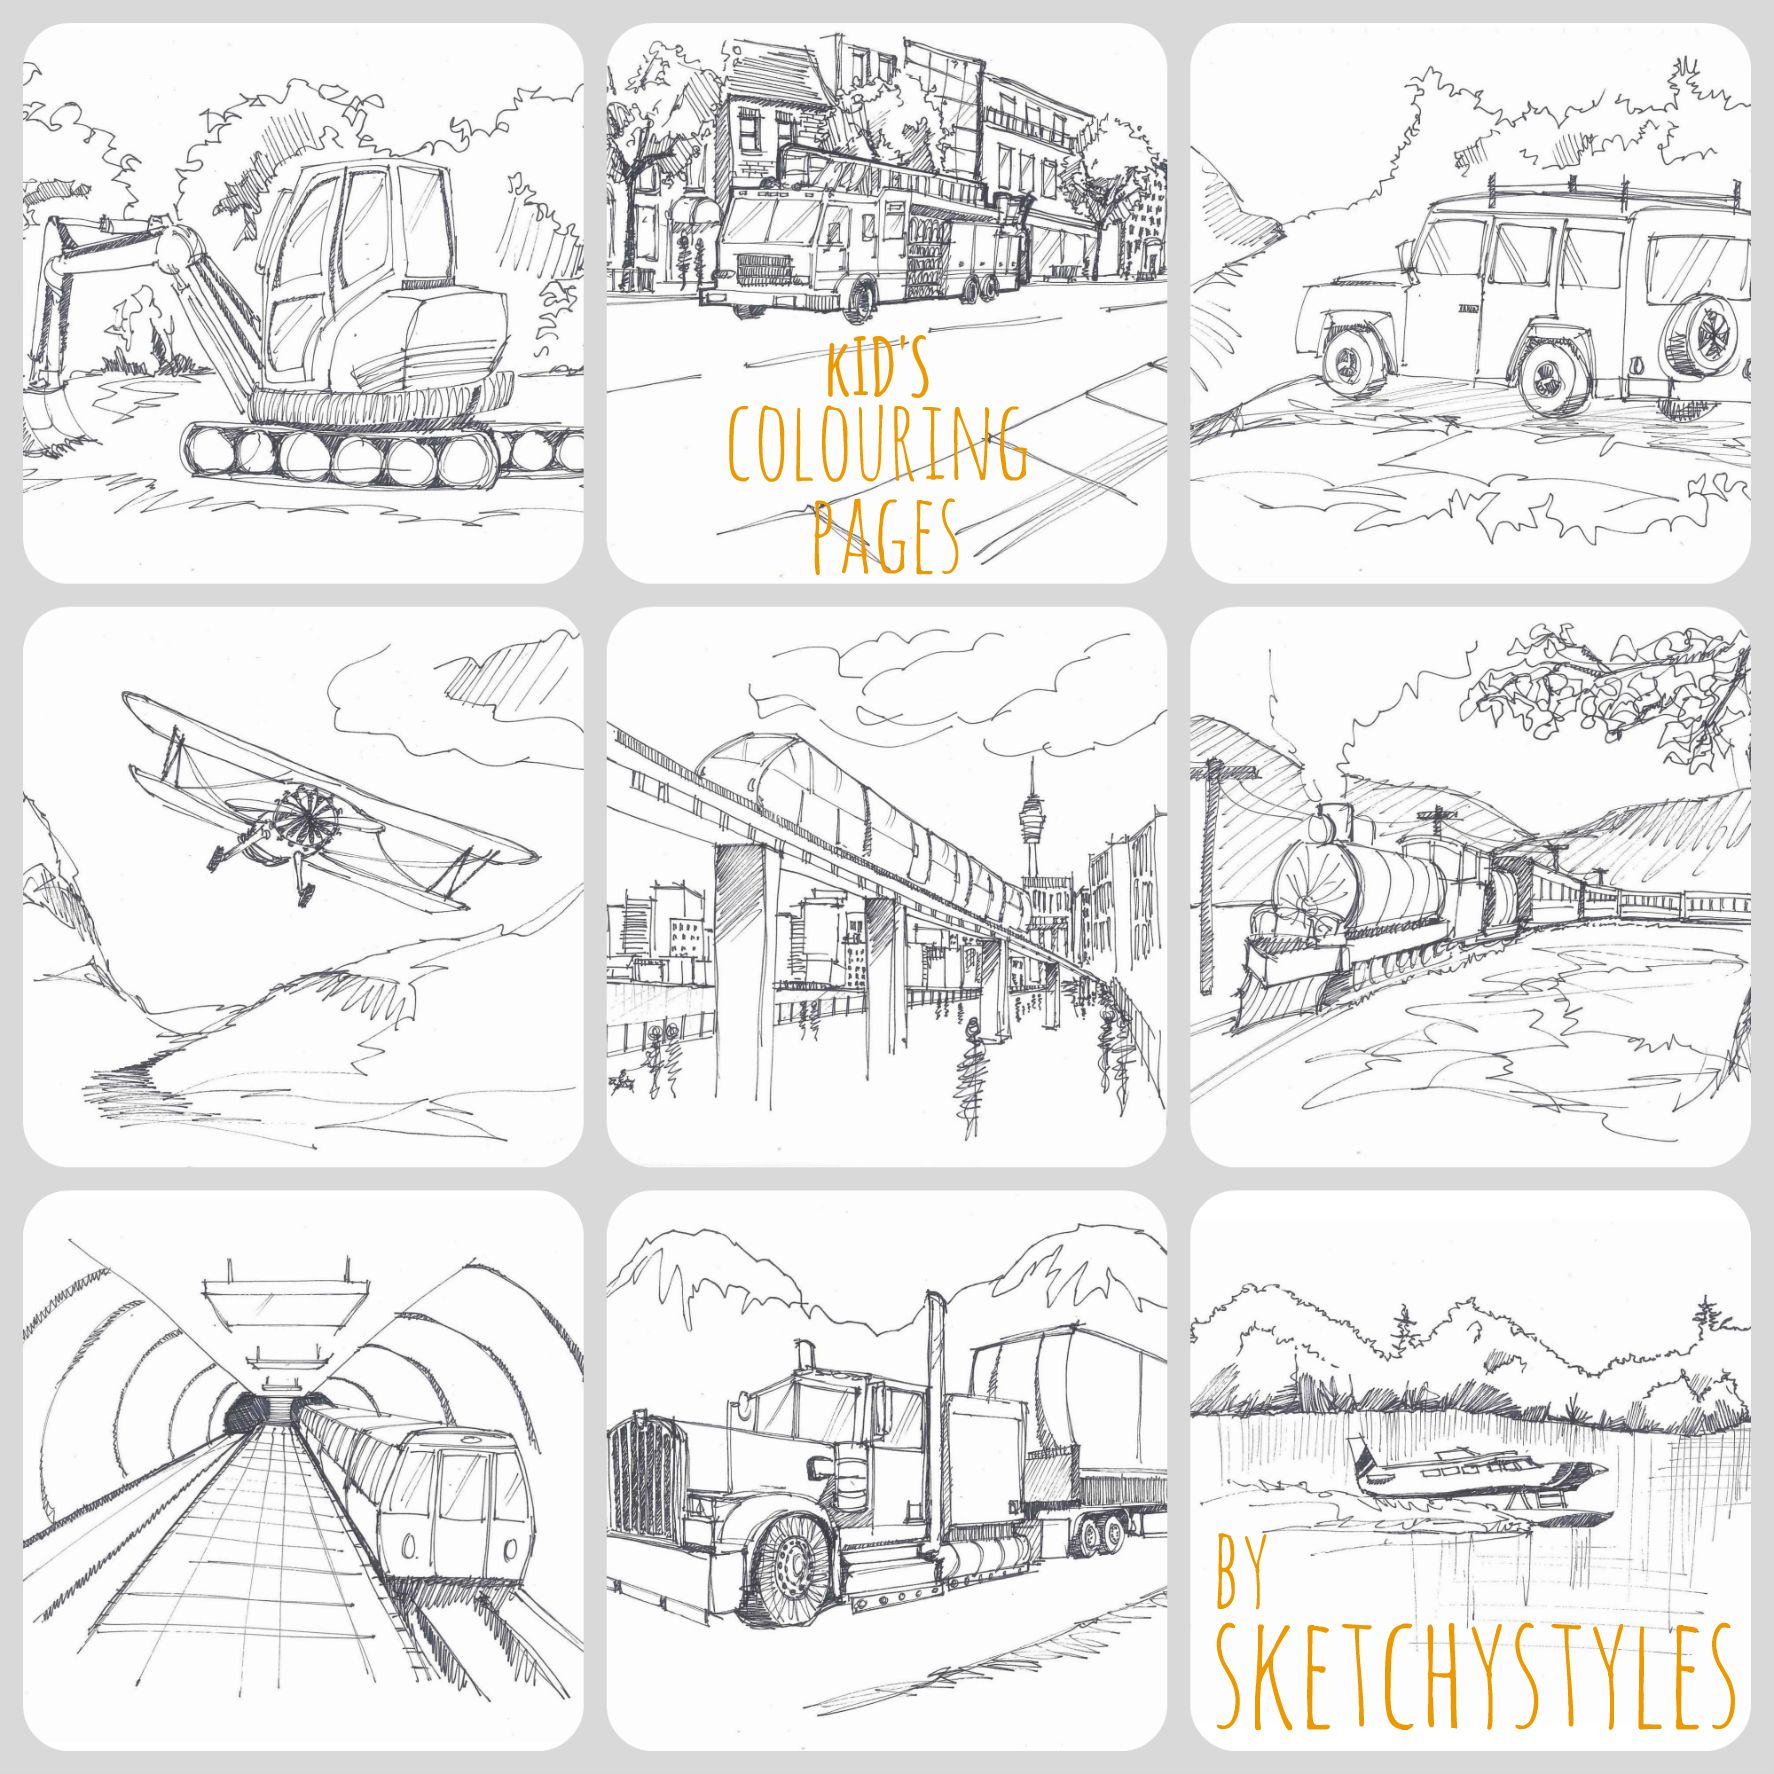 Kid\'s Colouring Pages by sketchystyles | Sketchy Styles - Etsy Shop ...